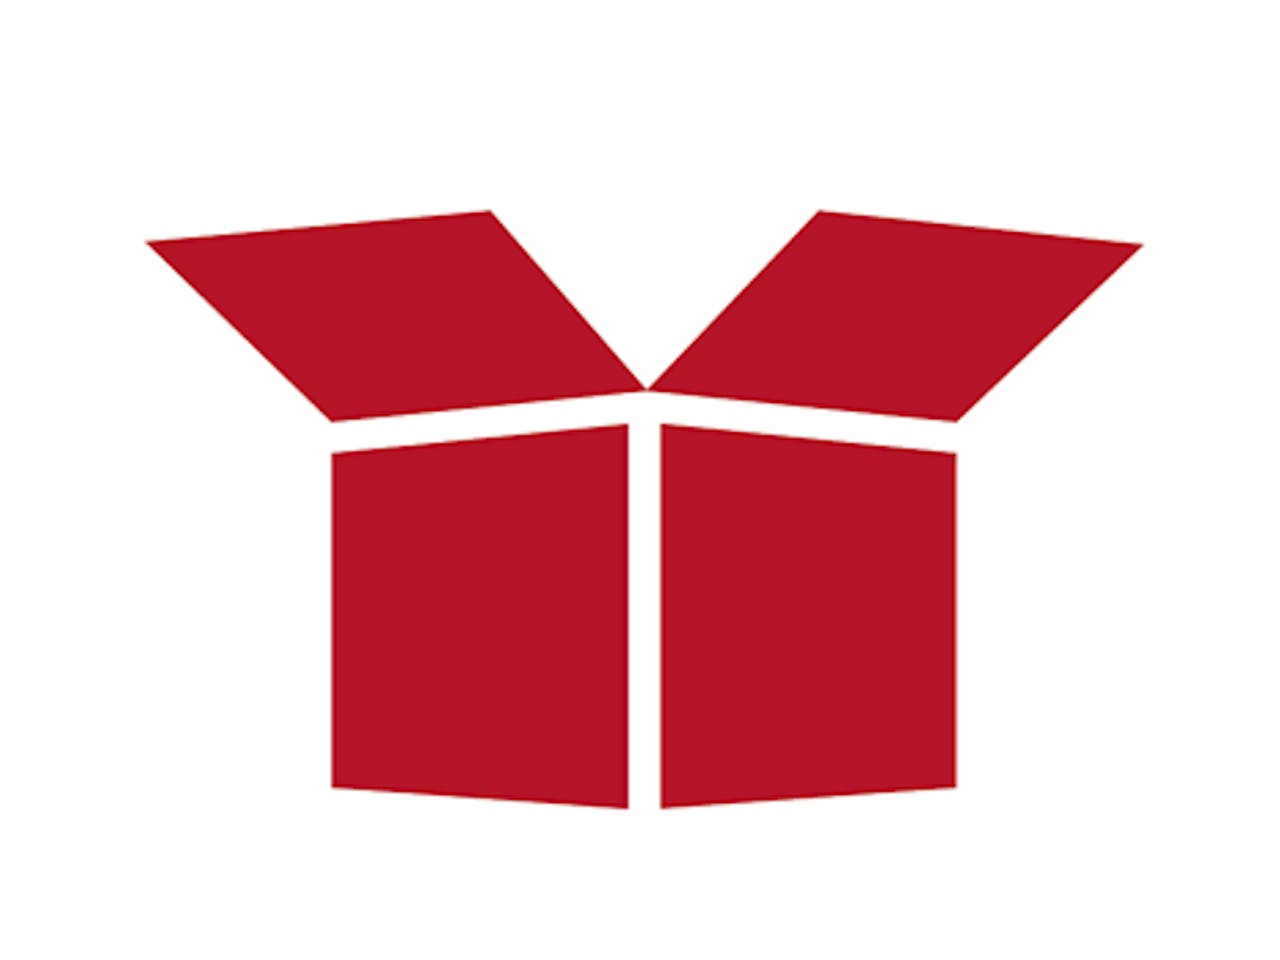 Umverpackung Icon